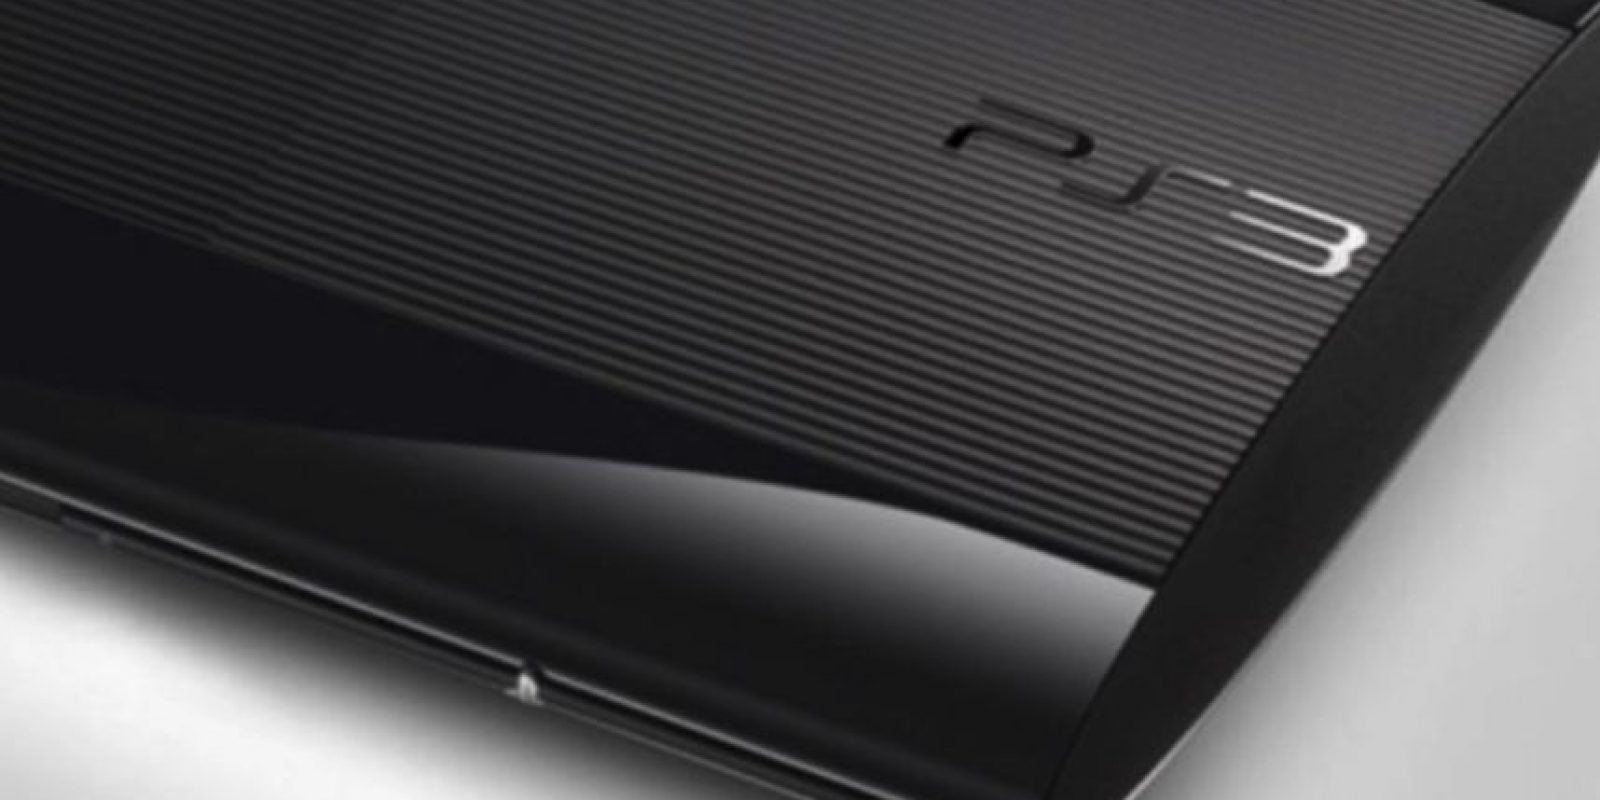 PlayStation Slim 3 Foto: Sony